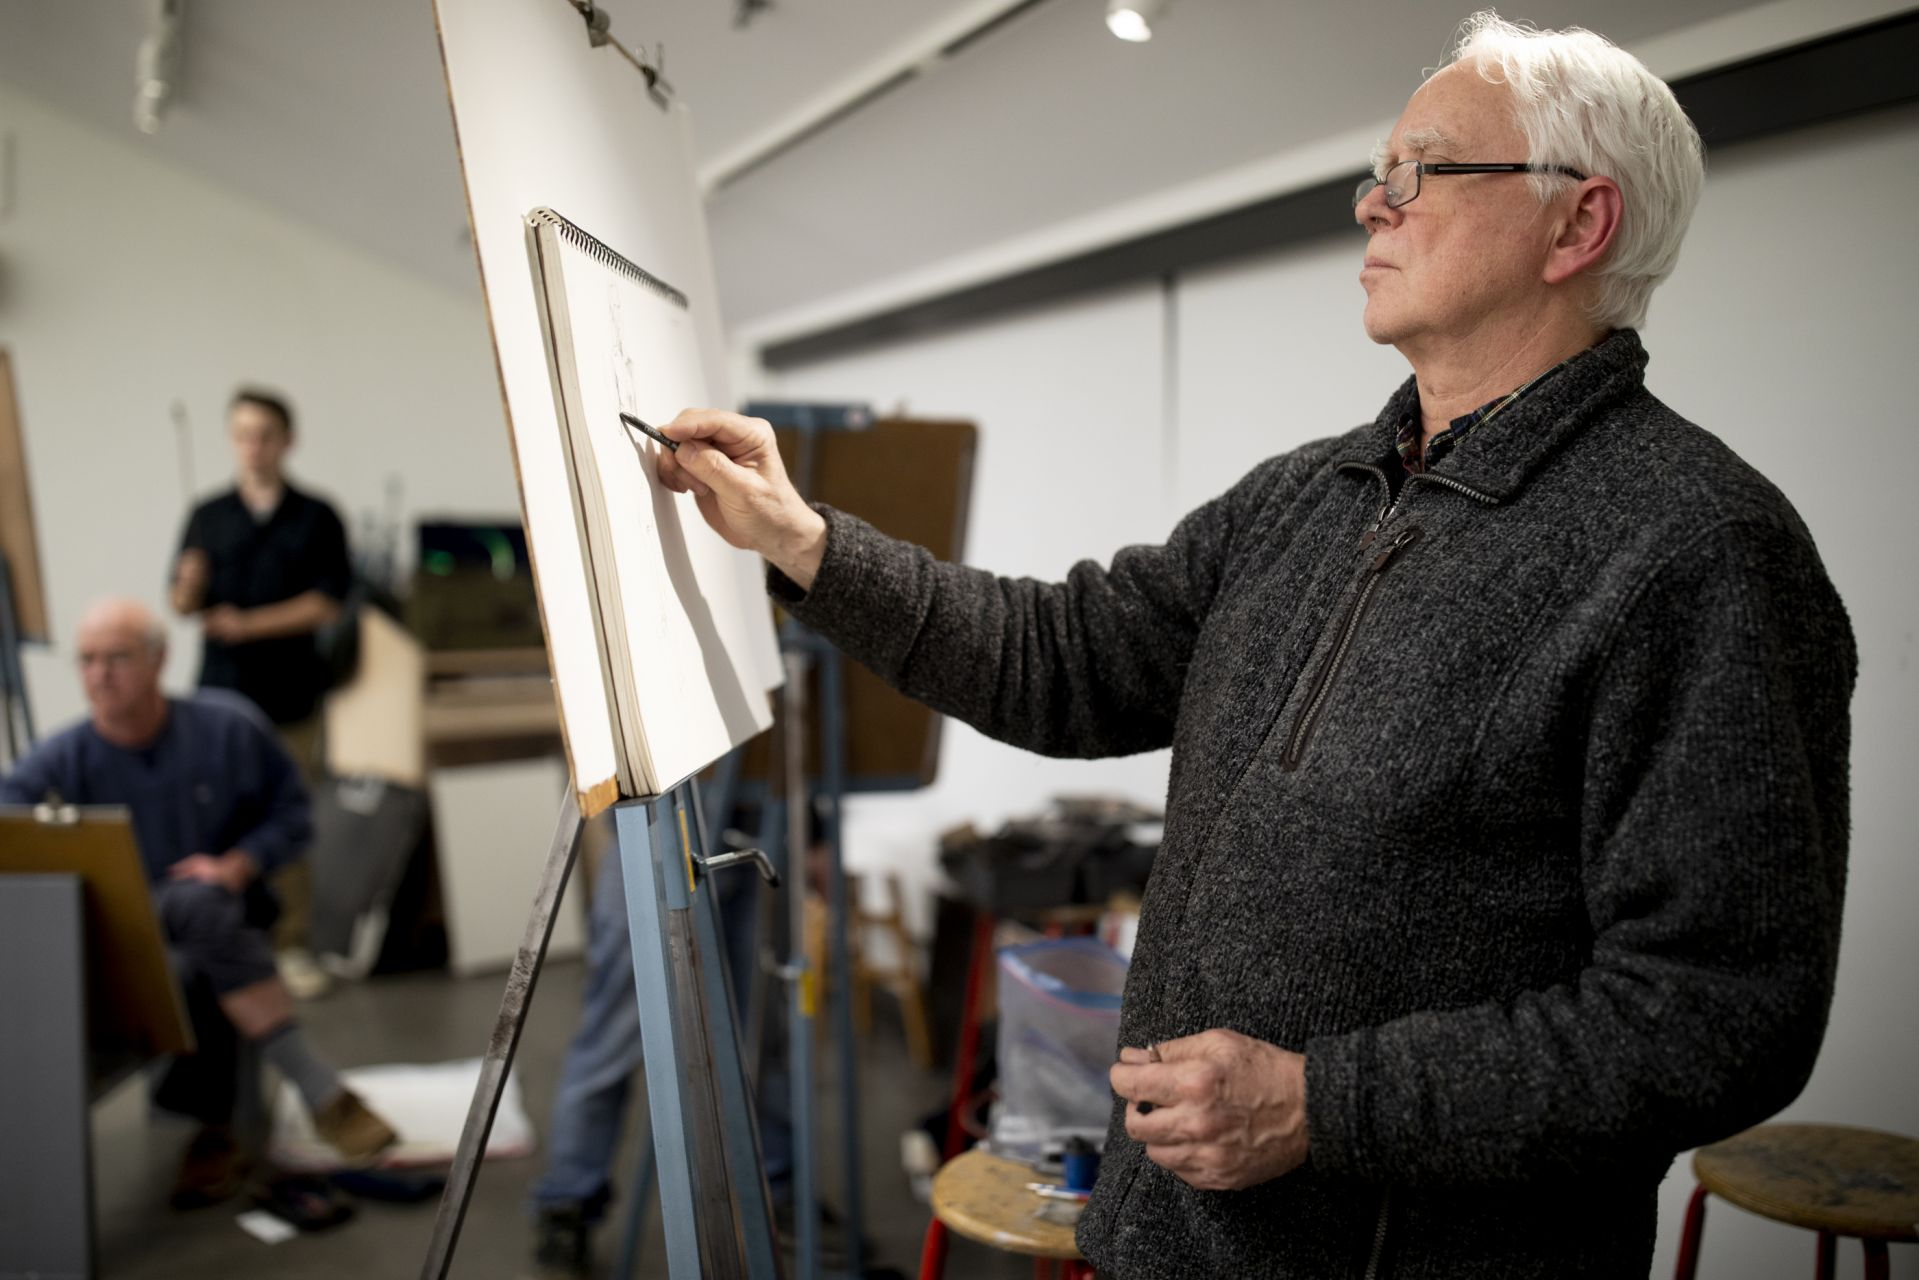 Olin Arts Center Community members, students, and staff attend a life drawing class. Landscape artist Joel Babb.